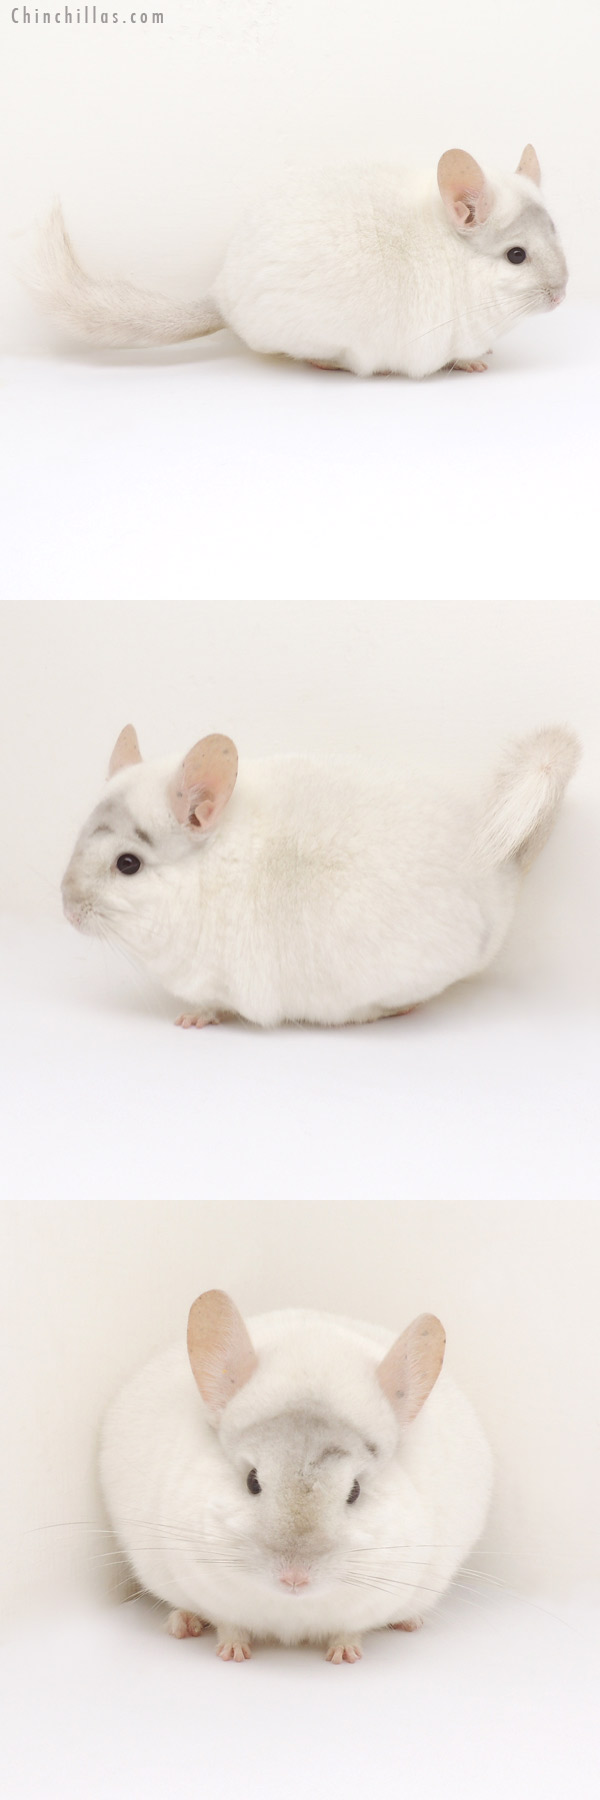 13110 Premium Production Quality Pink White Female Chinchilla